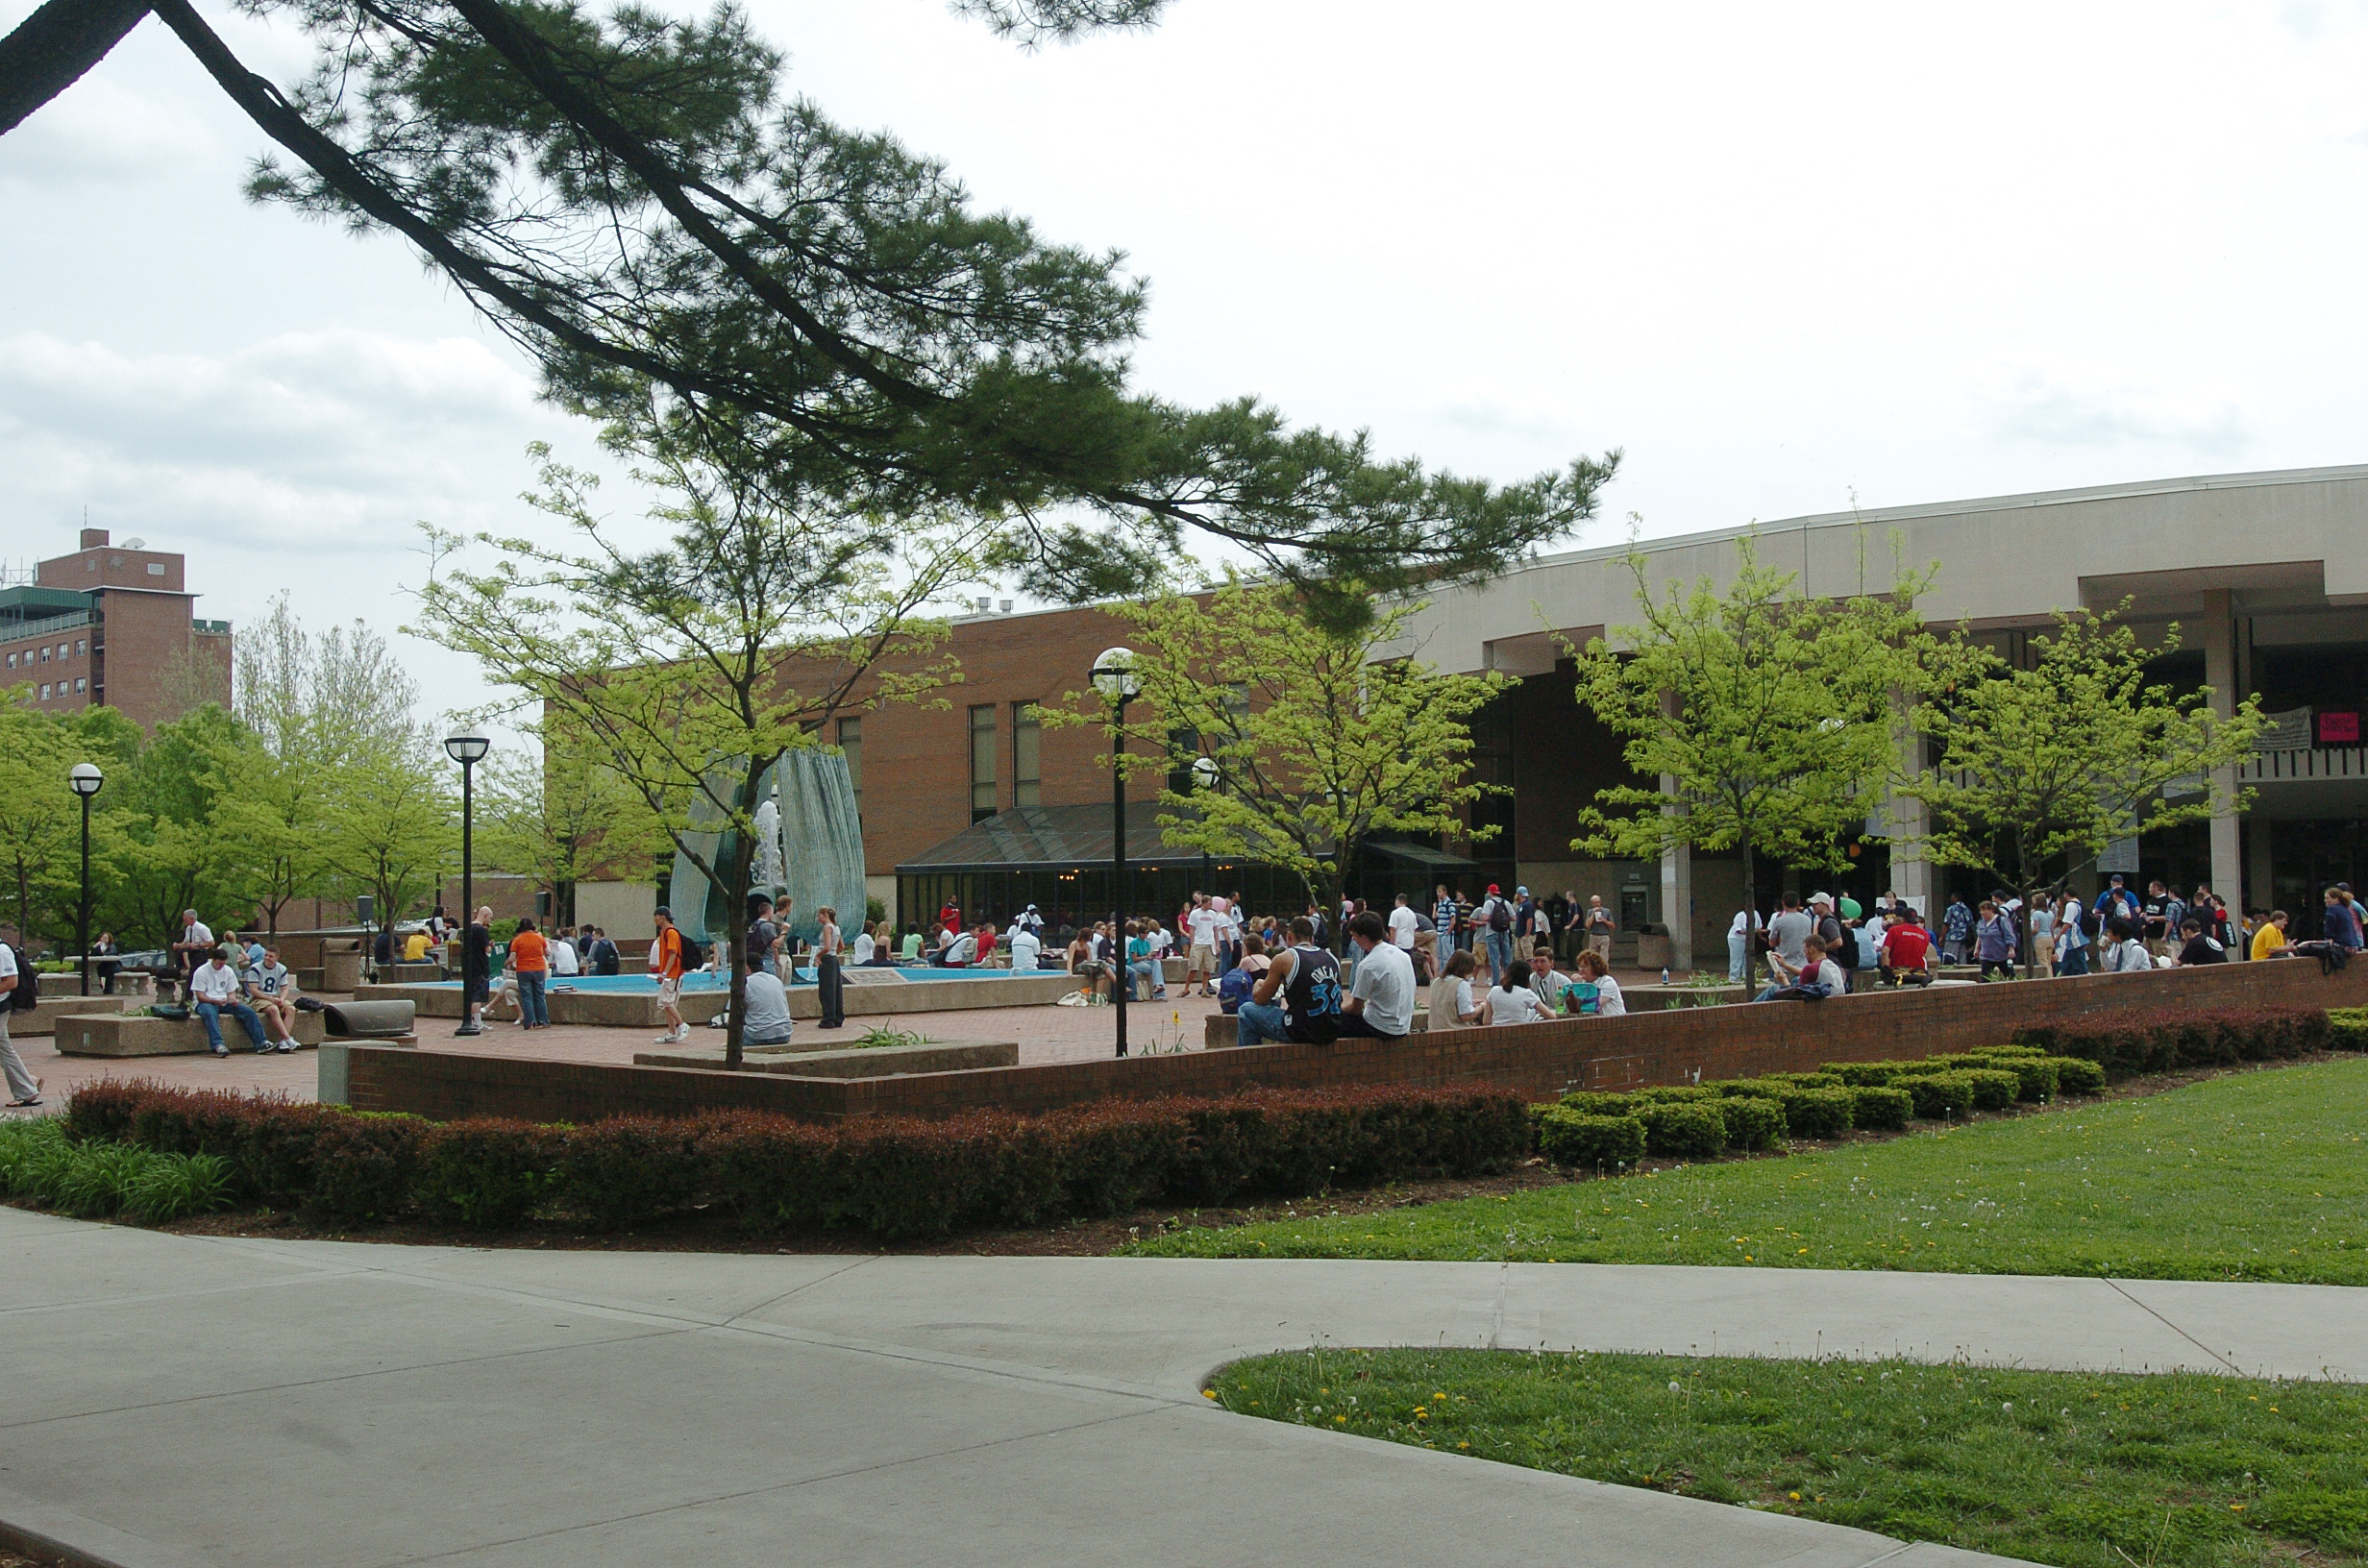 The MSC Plaza, located on the north side, is the heart of campus and the site of the Memorial Fountain.